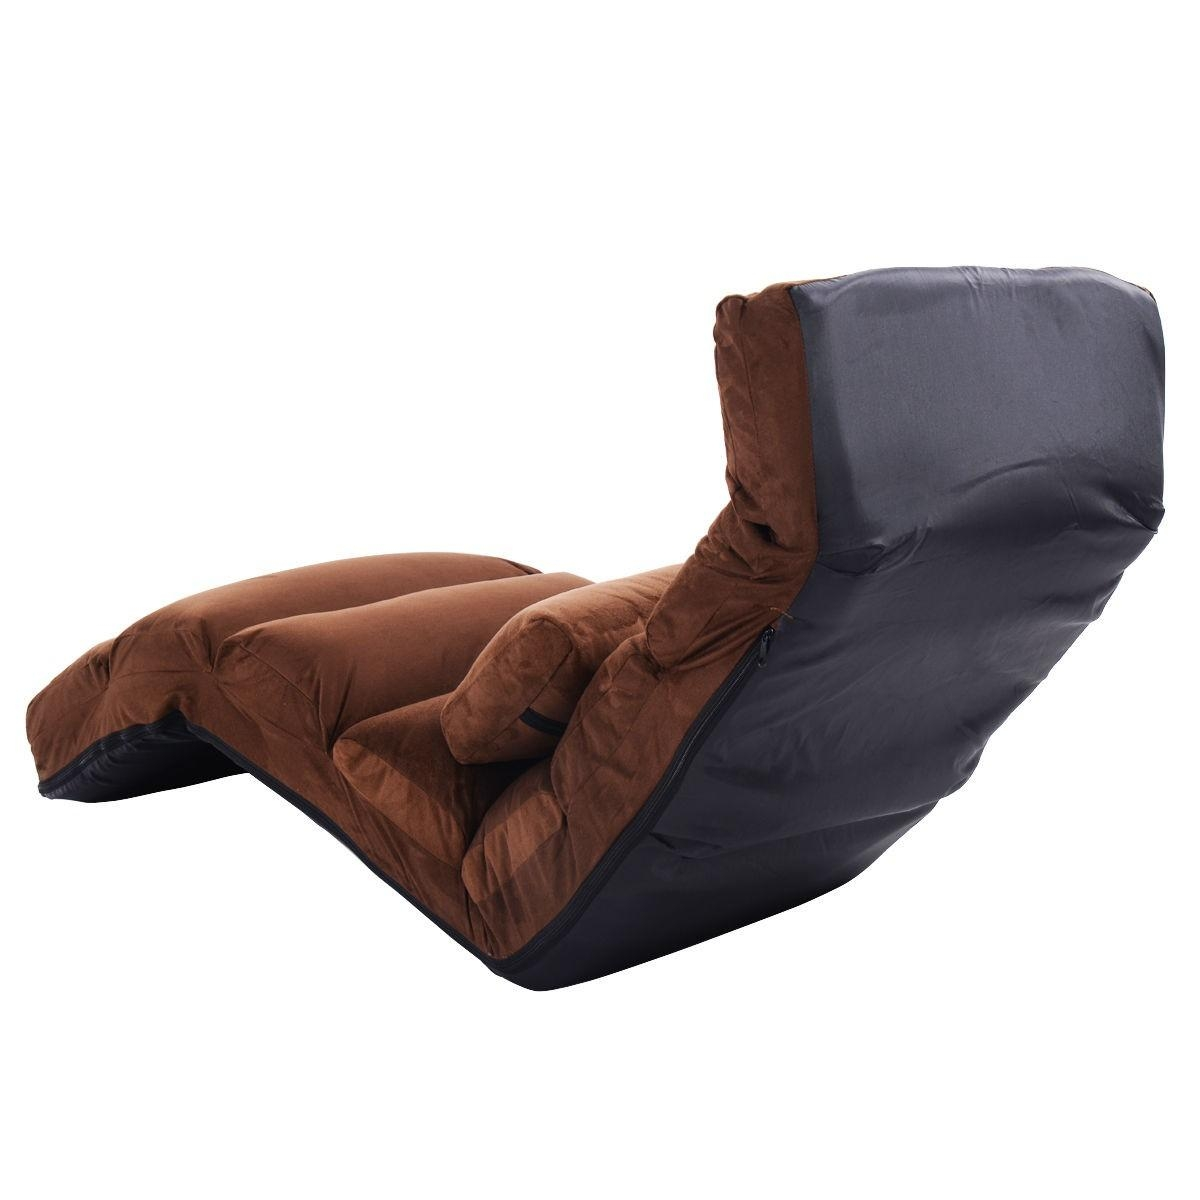 Folding Lazy Sofa Couch With Pillow – Floor Chairs – Chairs Intended For Lazy Sofa Chairs (View 4 of 20)